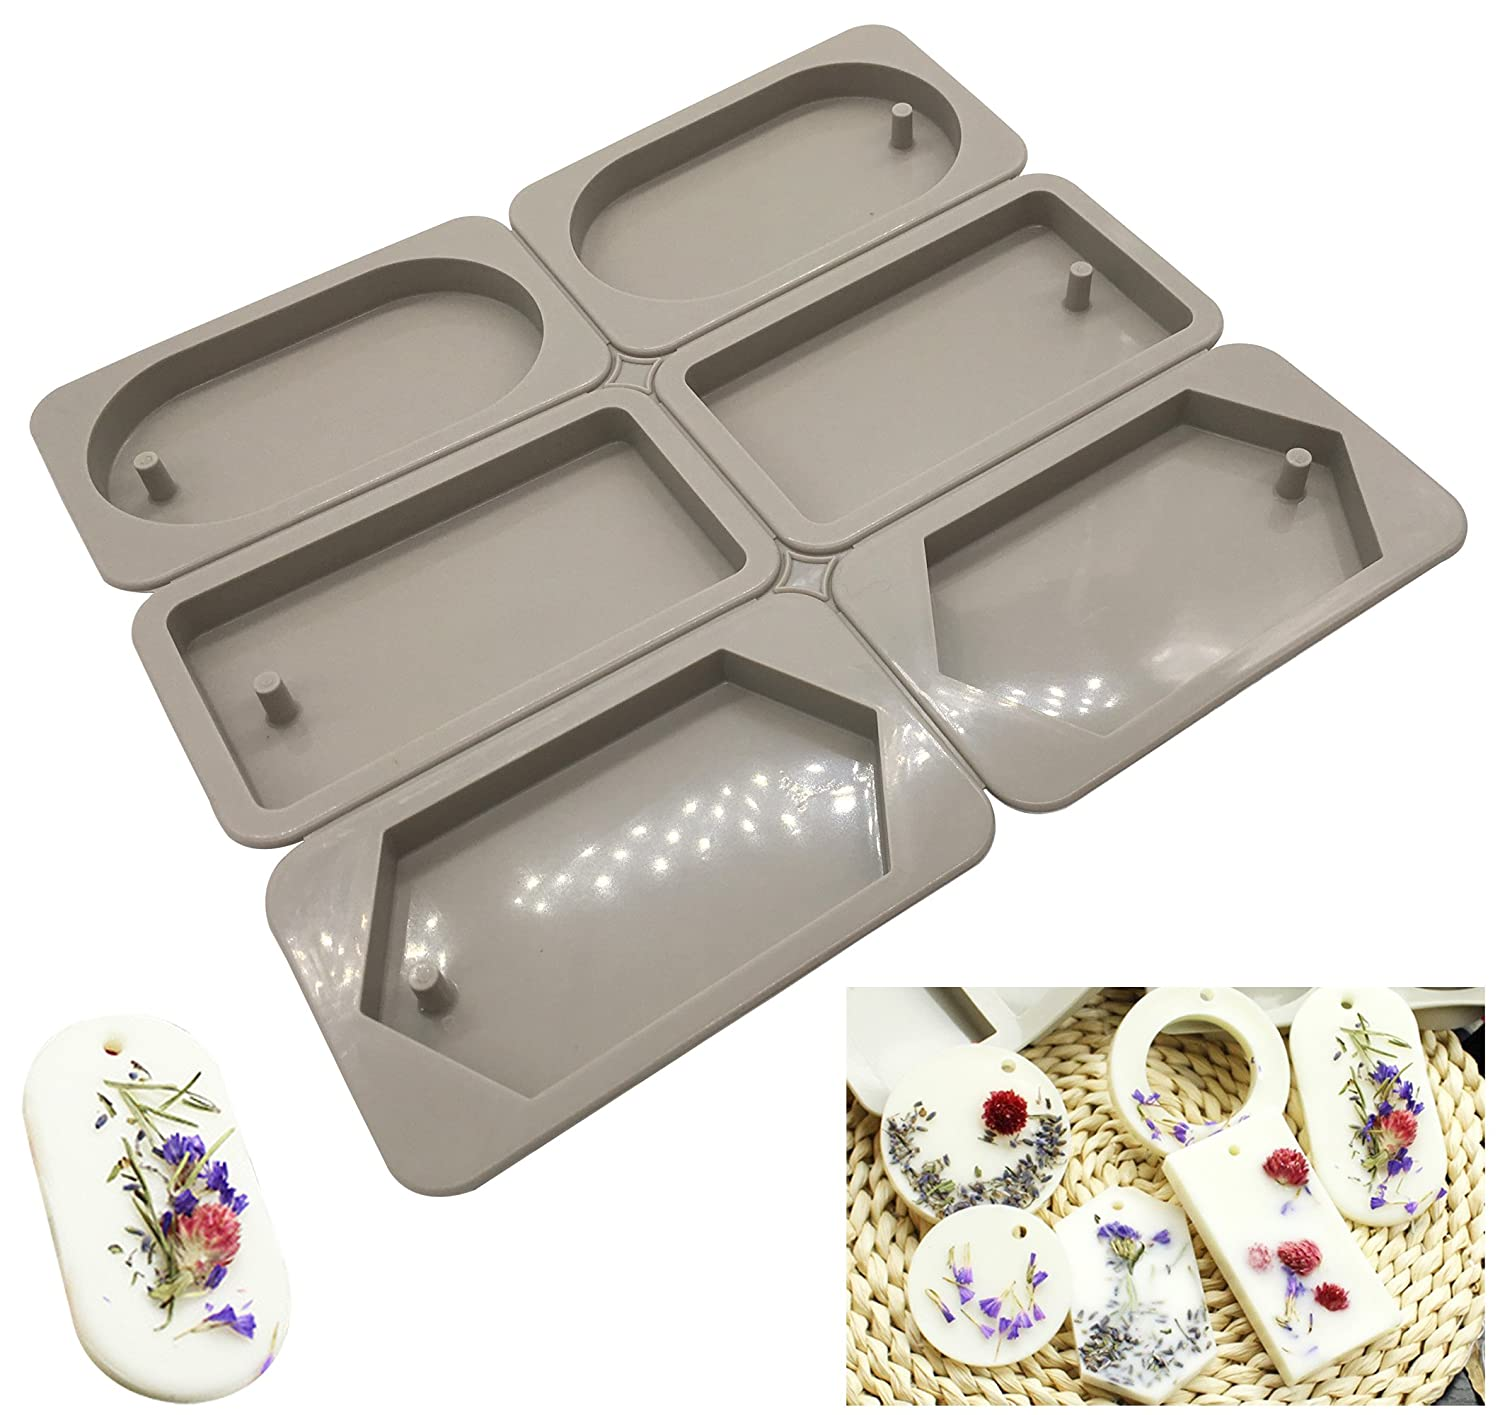 Silicone Wax Molds, KOOTIPS Resin Jewelry Molds Making with Hanging Hole for DIY Jewelry Craft Making Kootips-1-3057